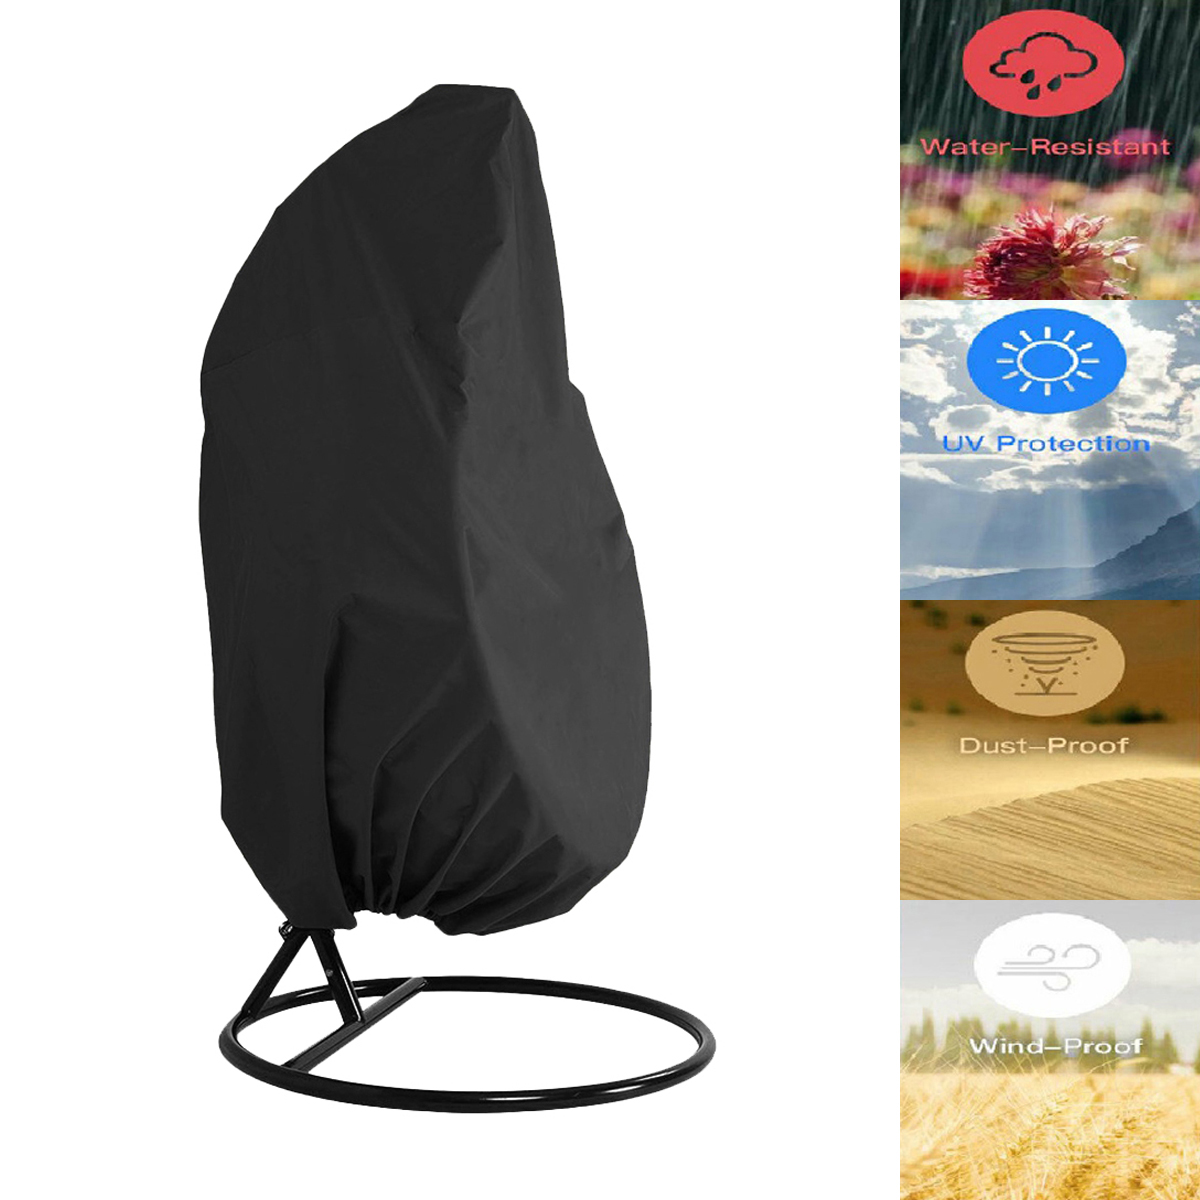 190 x 115cm Black / Grey  210D Oxford Fabric Waterproof Dustproof Outdoor Garden Patio Hanging Swing Rattan Chair Cover